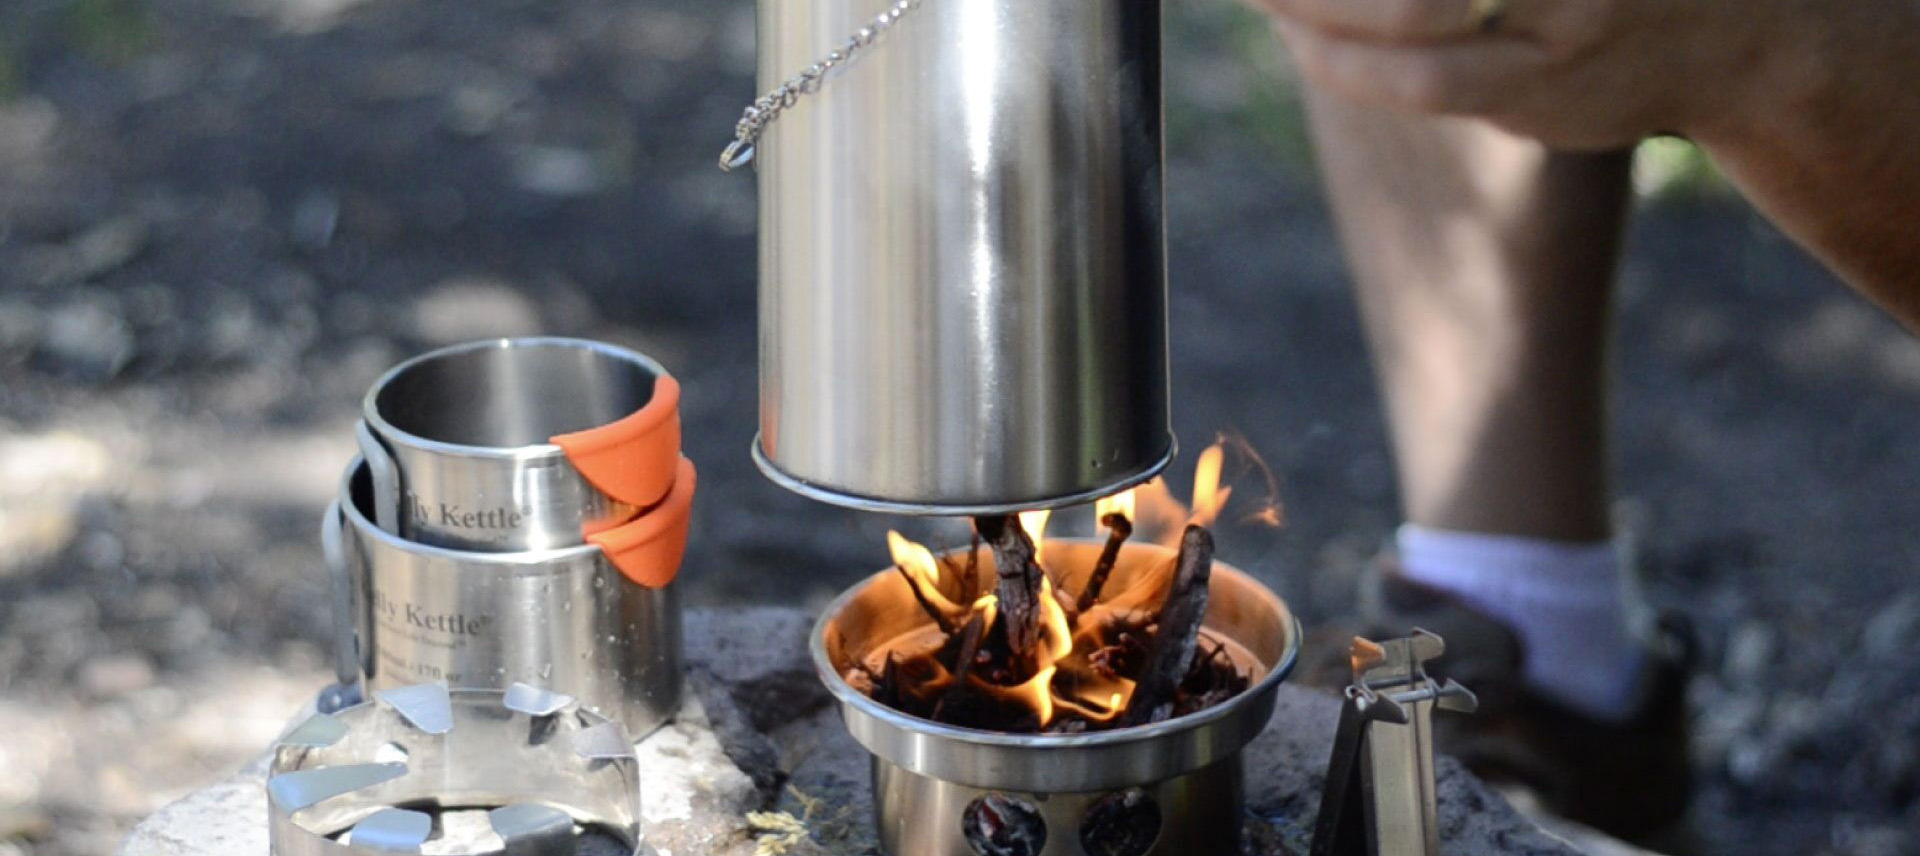 Kelly Kettle Accessories